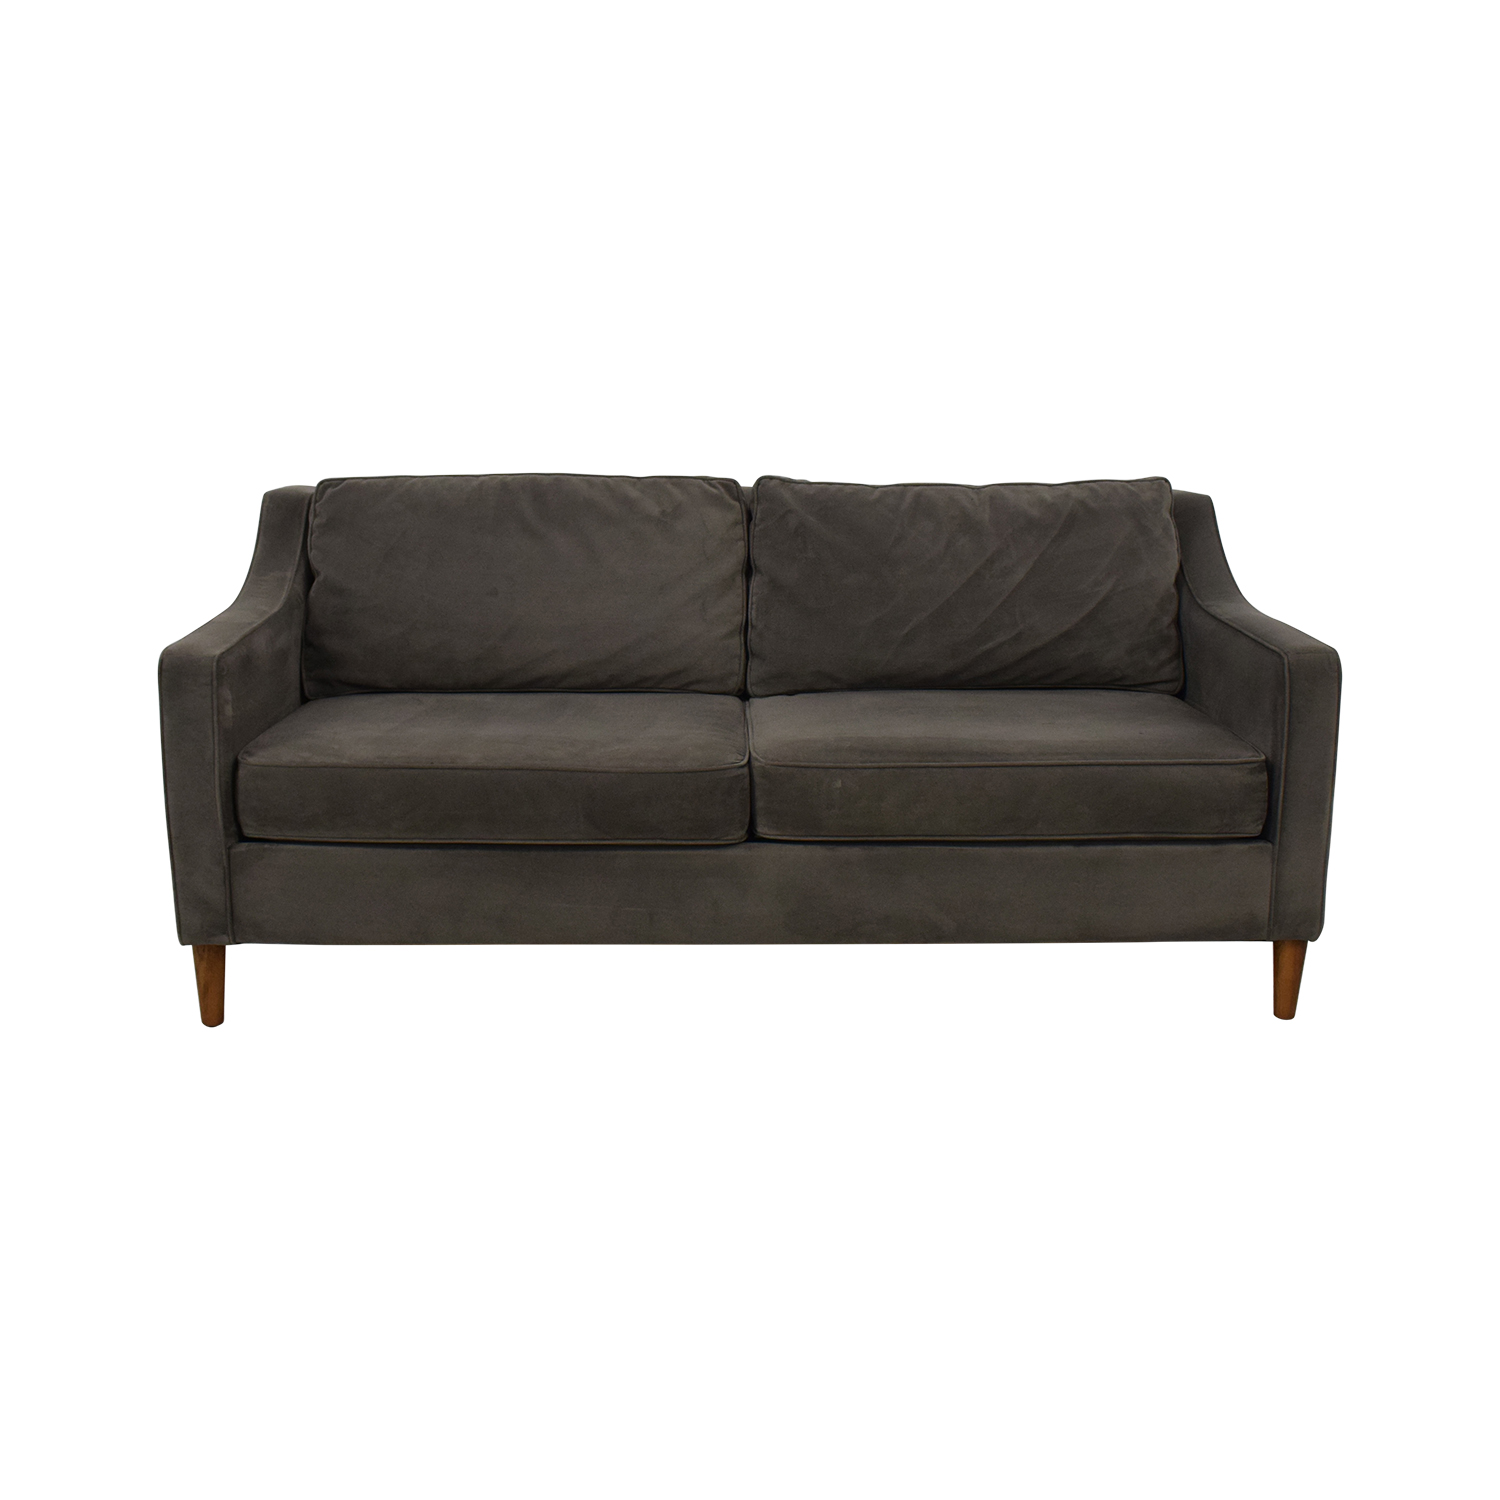 West Elm Paidge Velvet Sofa sale